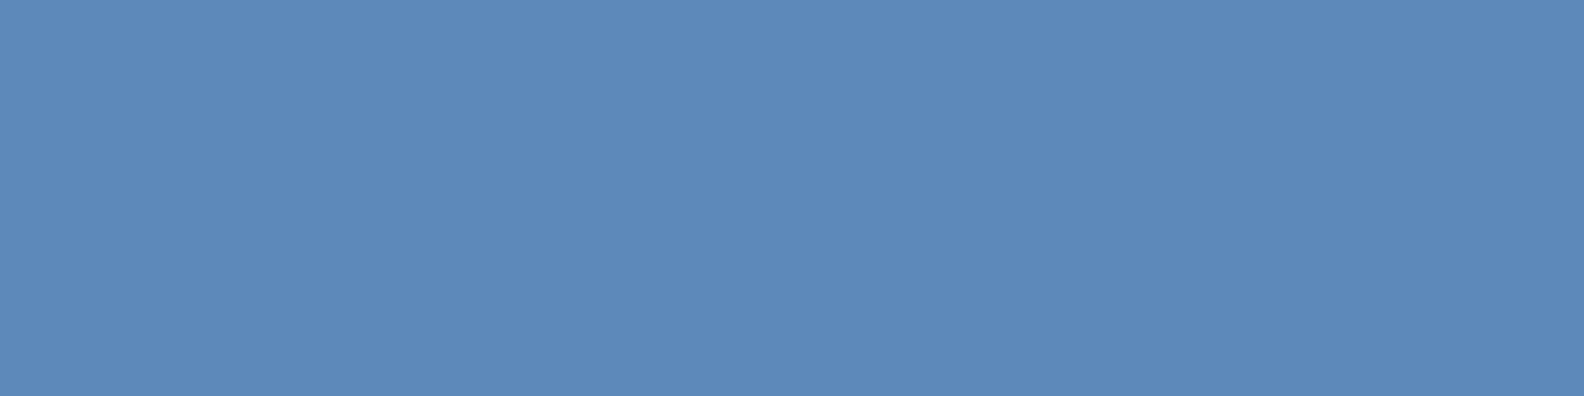 1584x396 Silver Lake Blue Solid Color Background